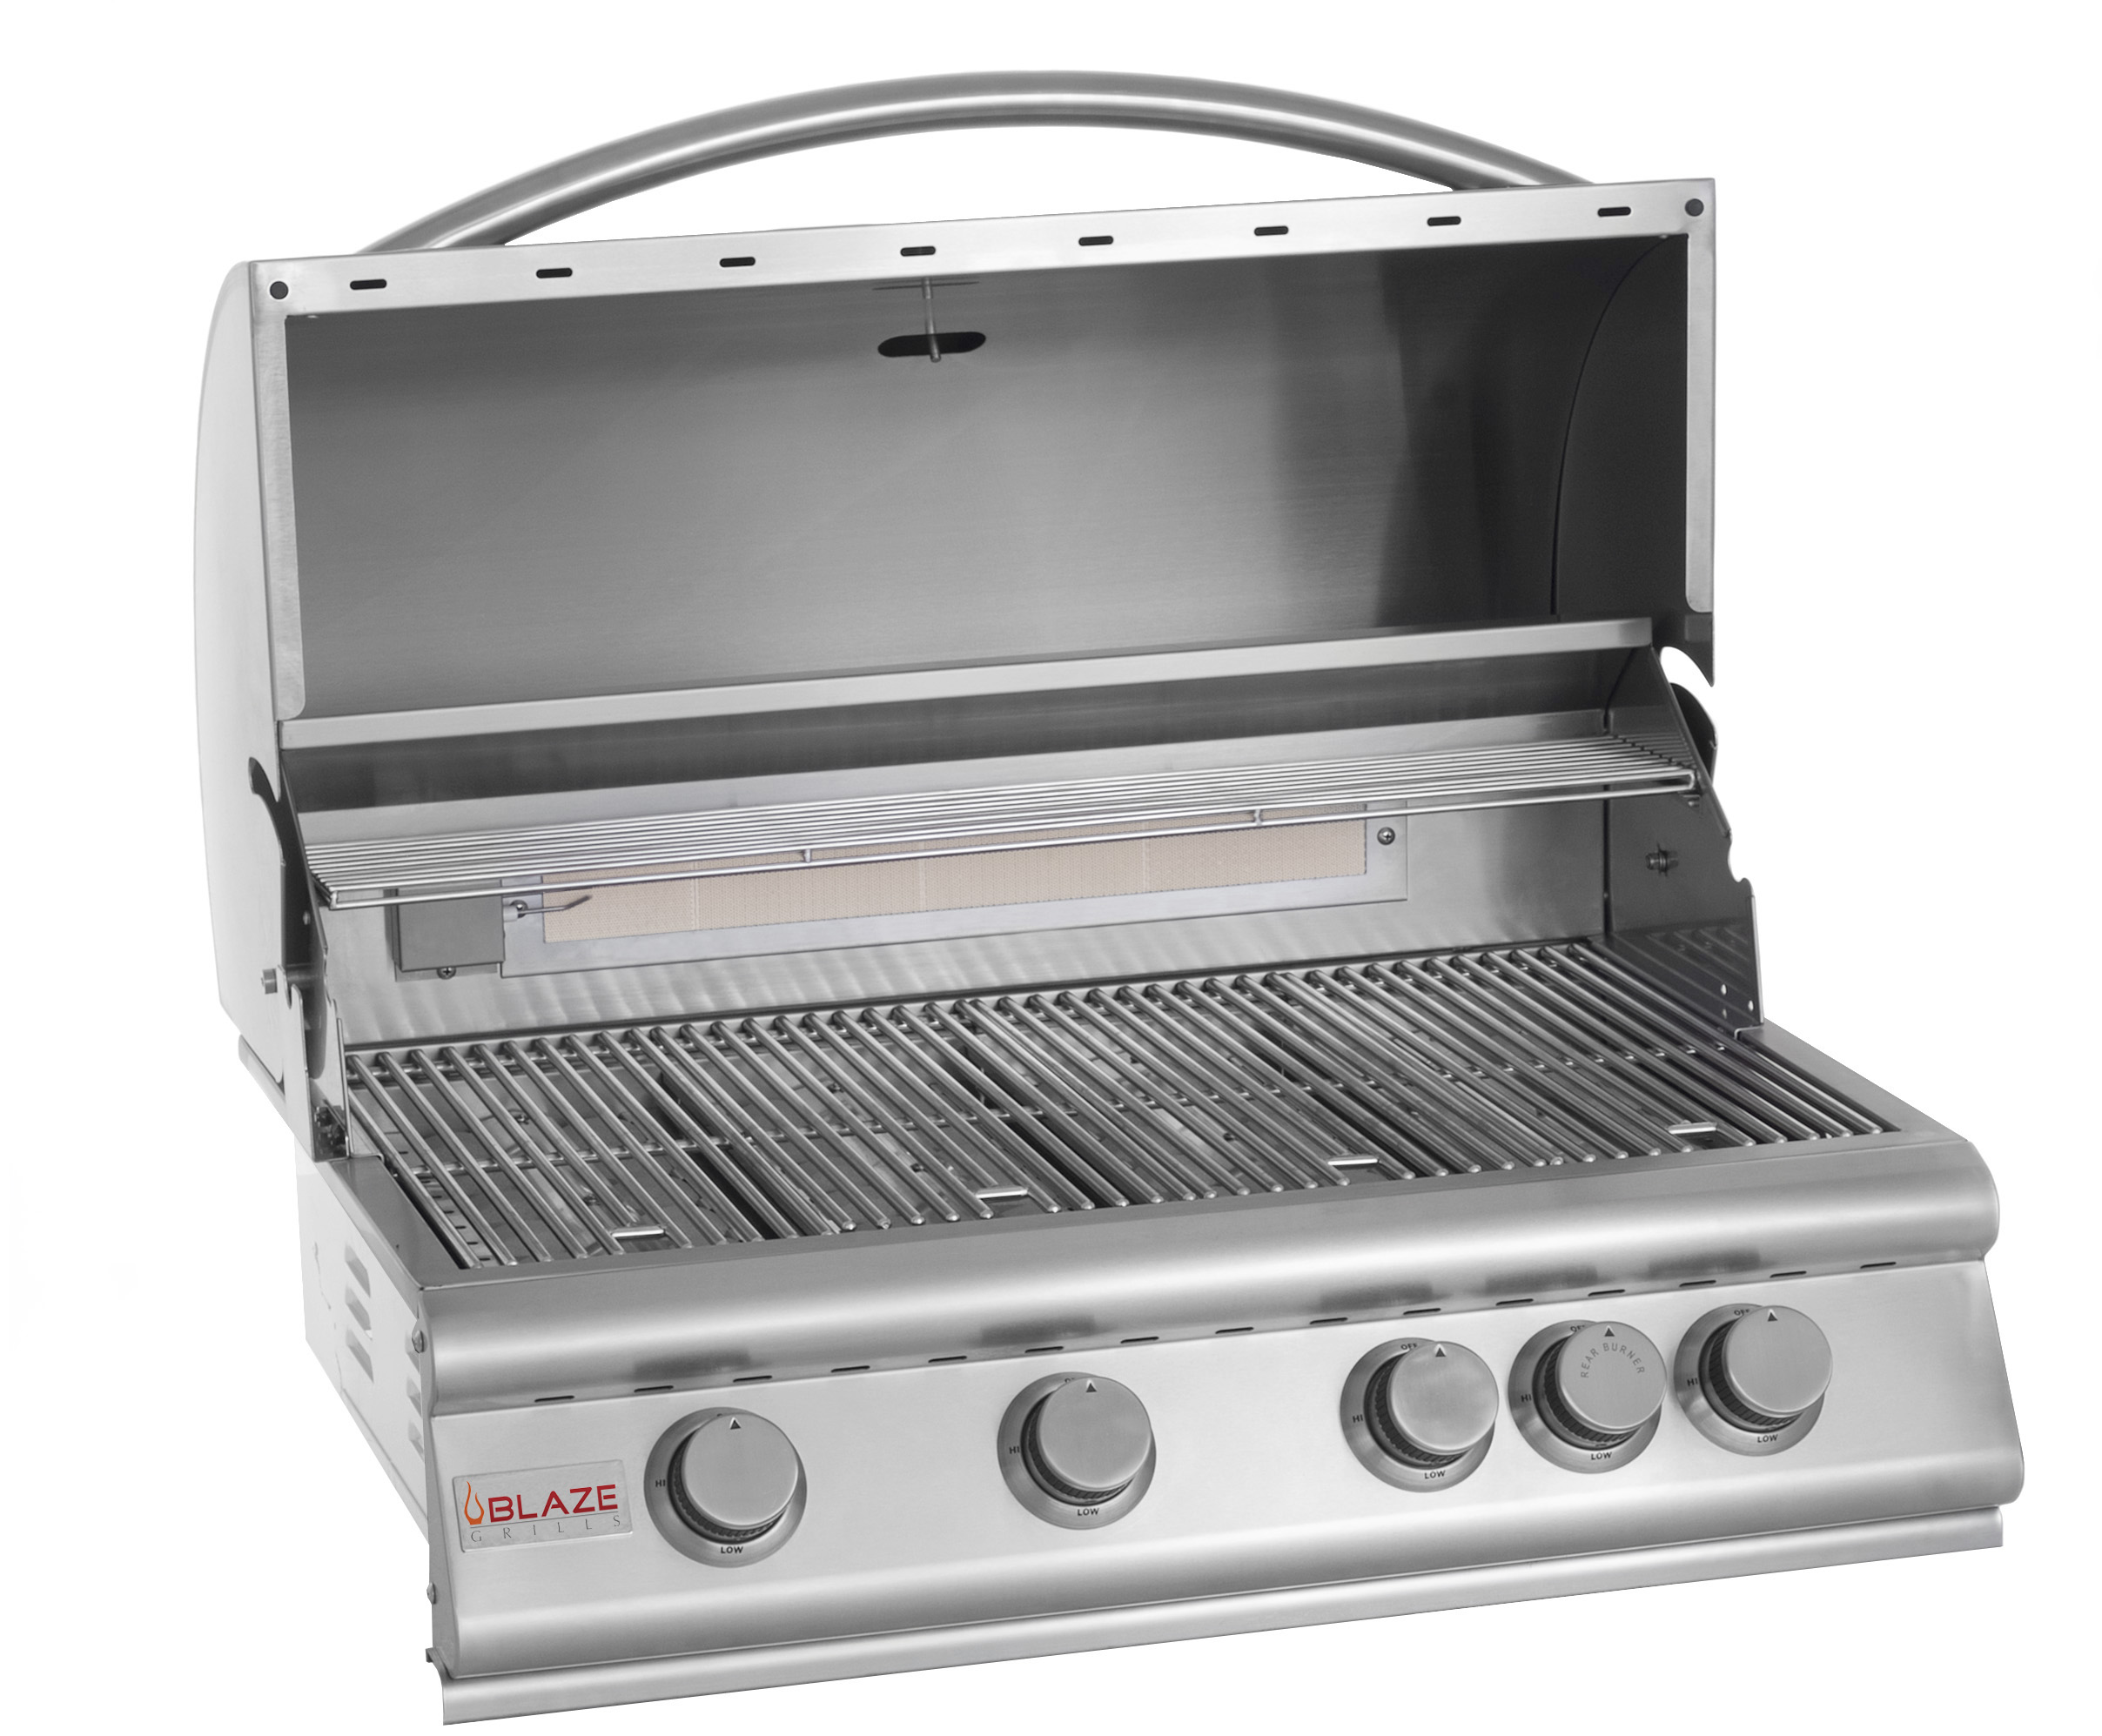 Outdoor Grill Blaze Outdoor Products 32 4 Burner Grill